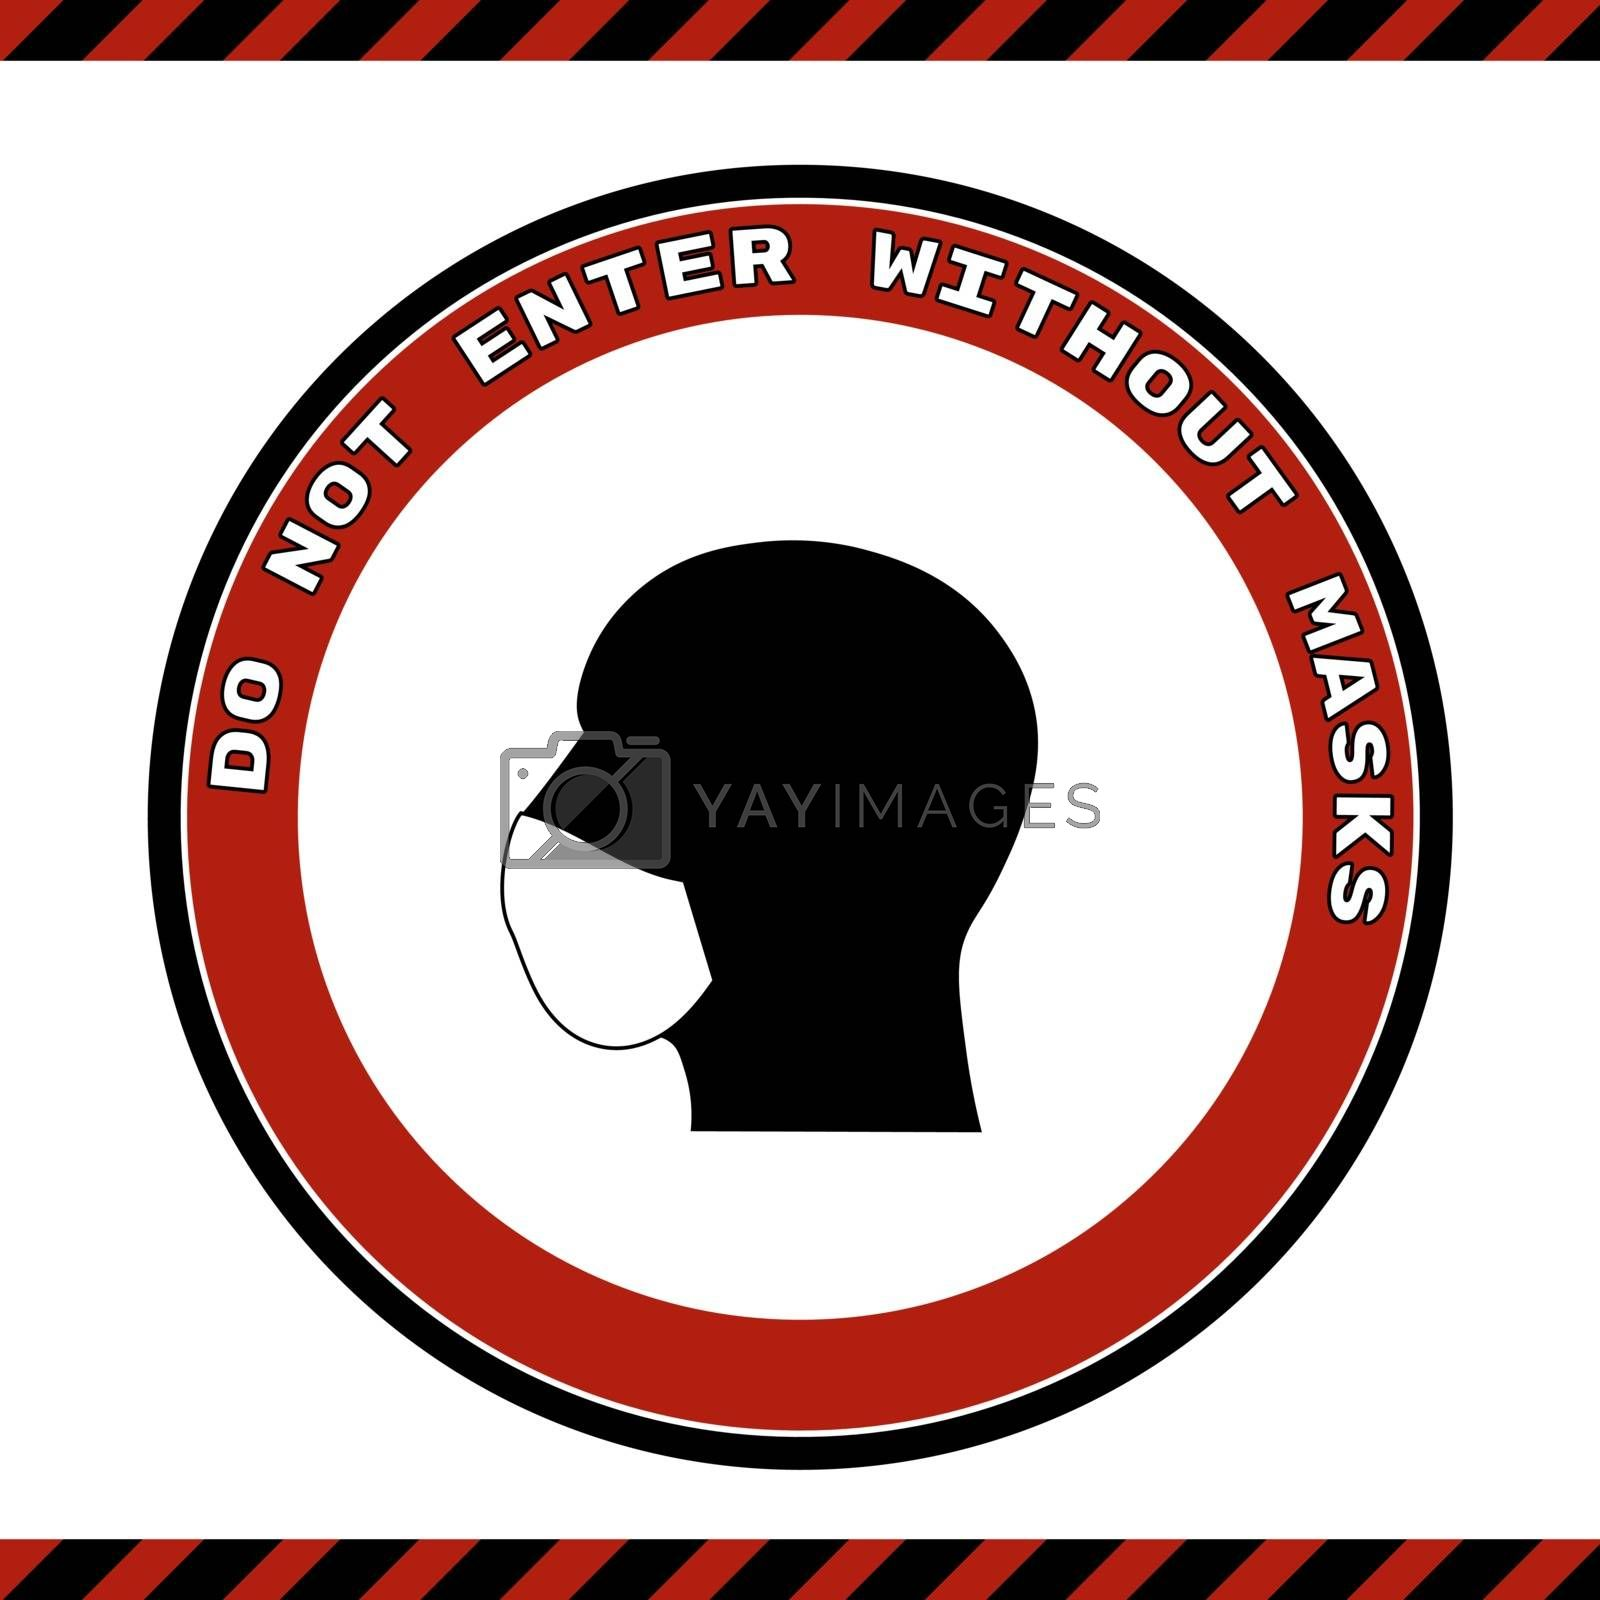 Please Wear Medical Mask Signage or Floor Sticker for help reduce the risk of catching coronavirus Covid-19. Vector sign.